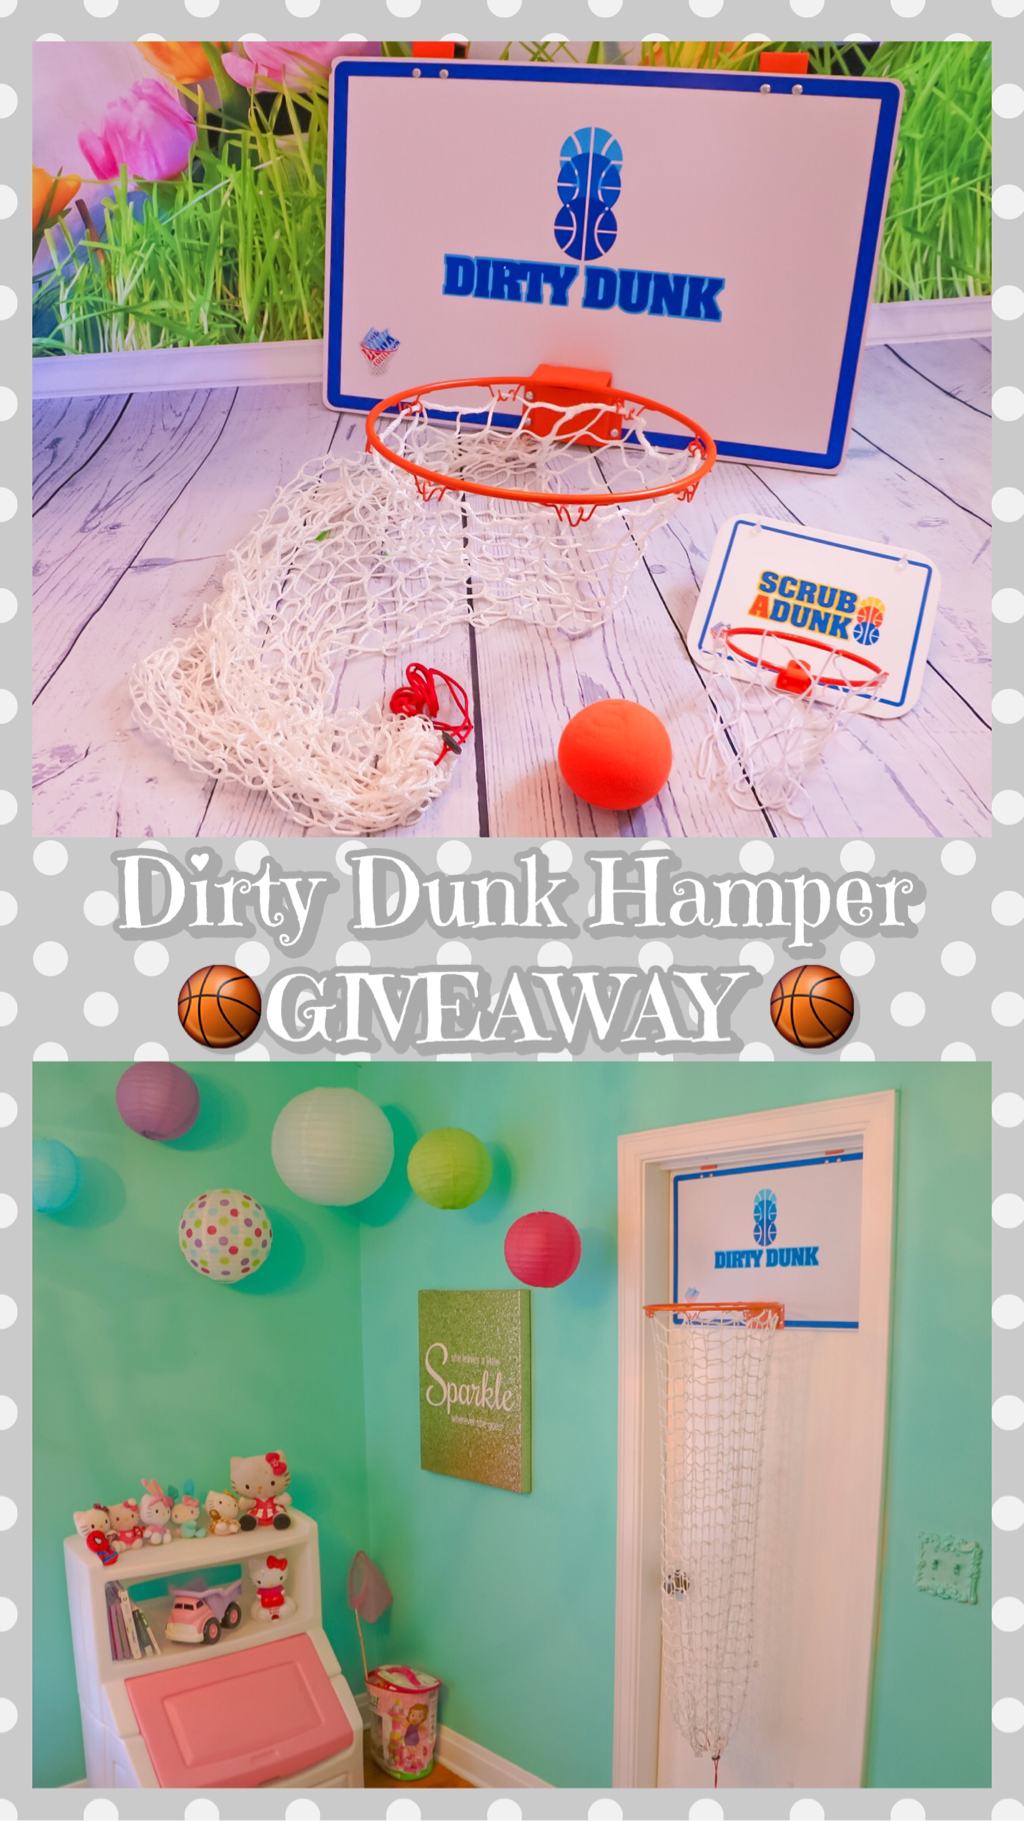 DIRTY DUNK HAMPER